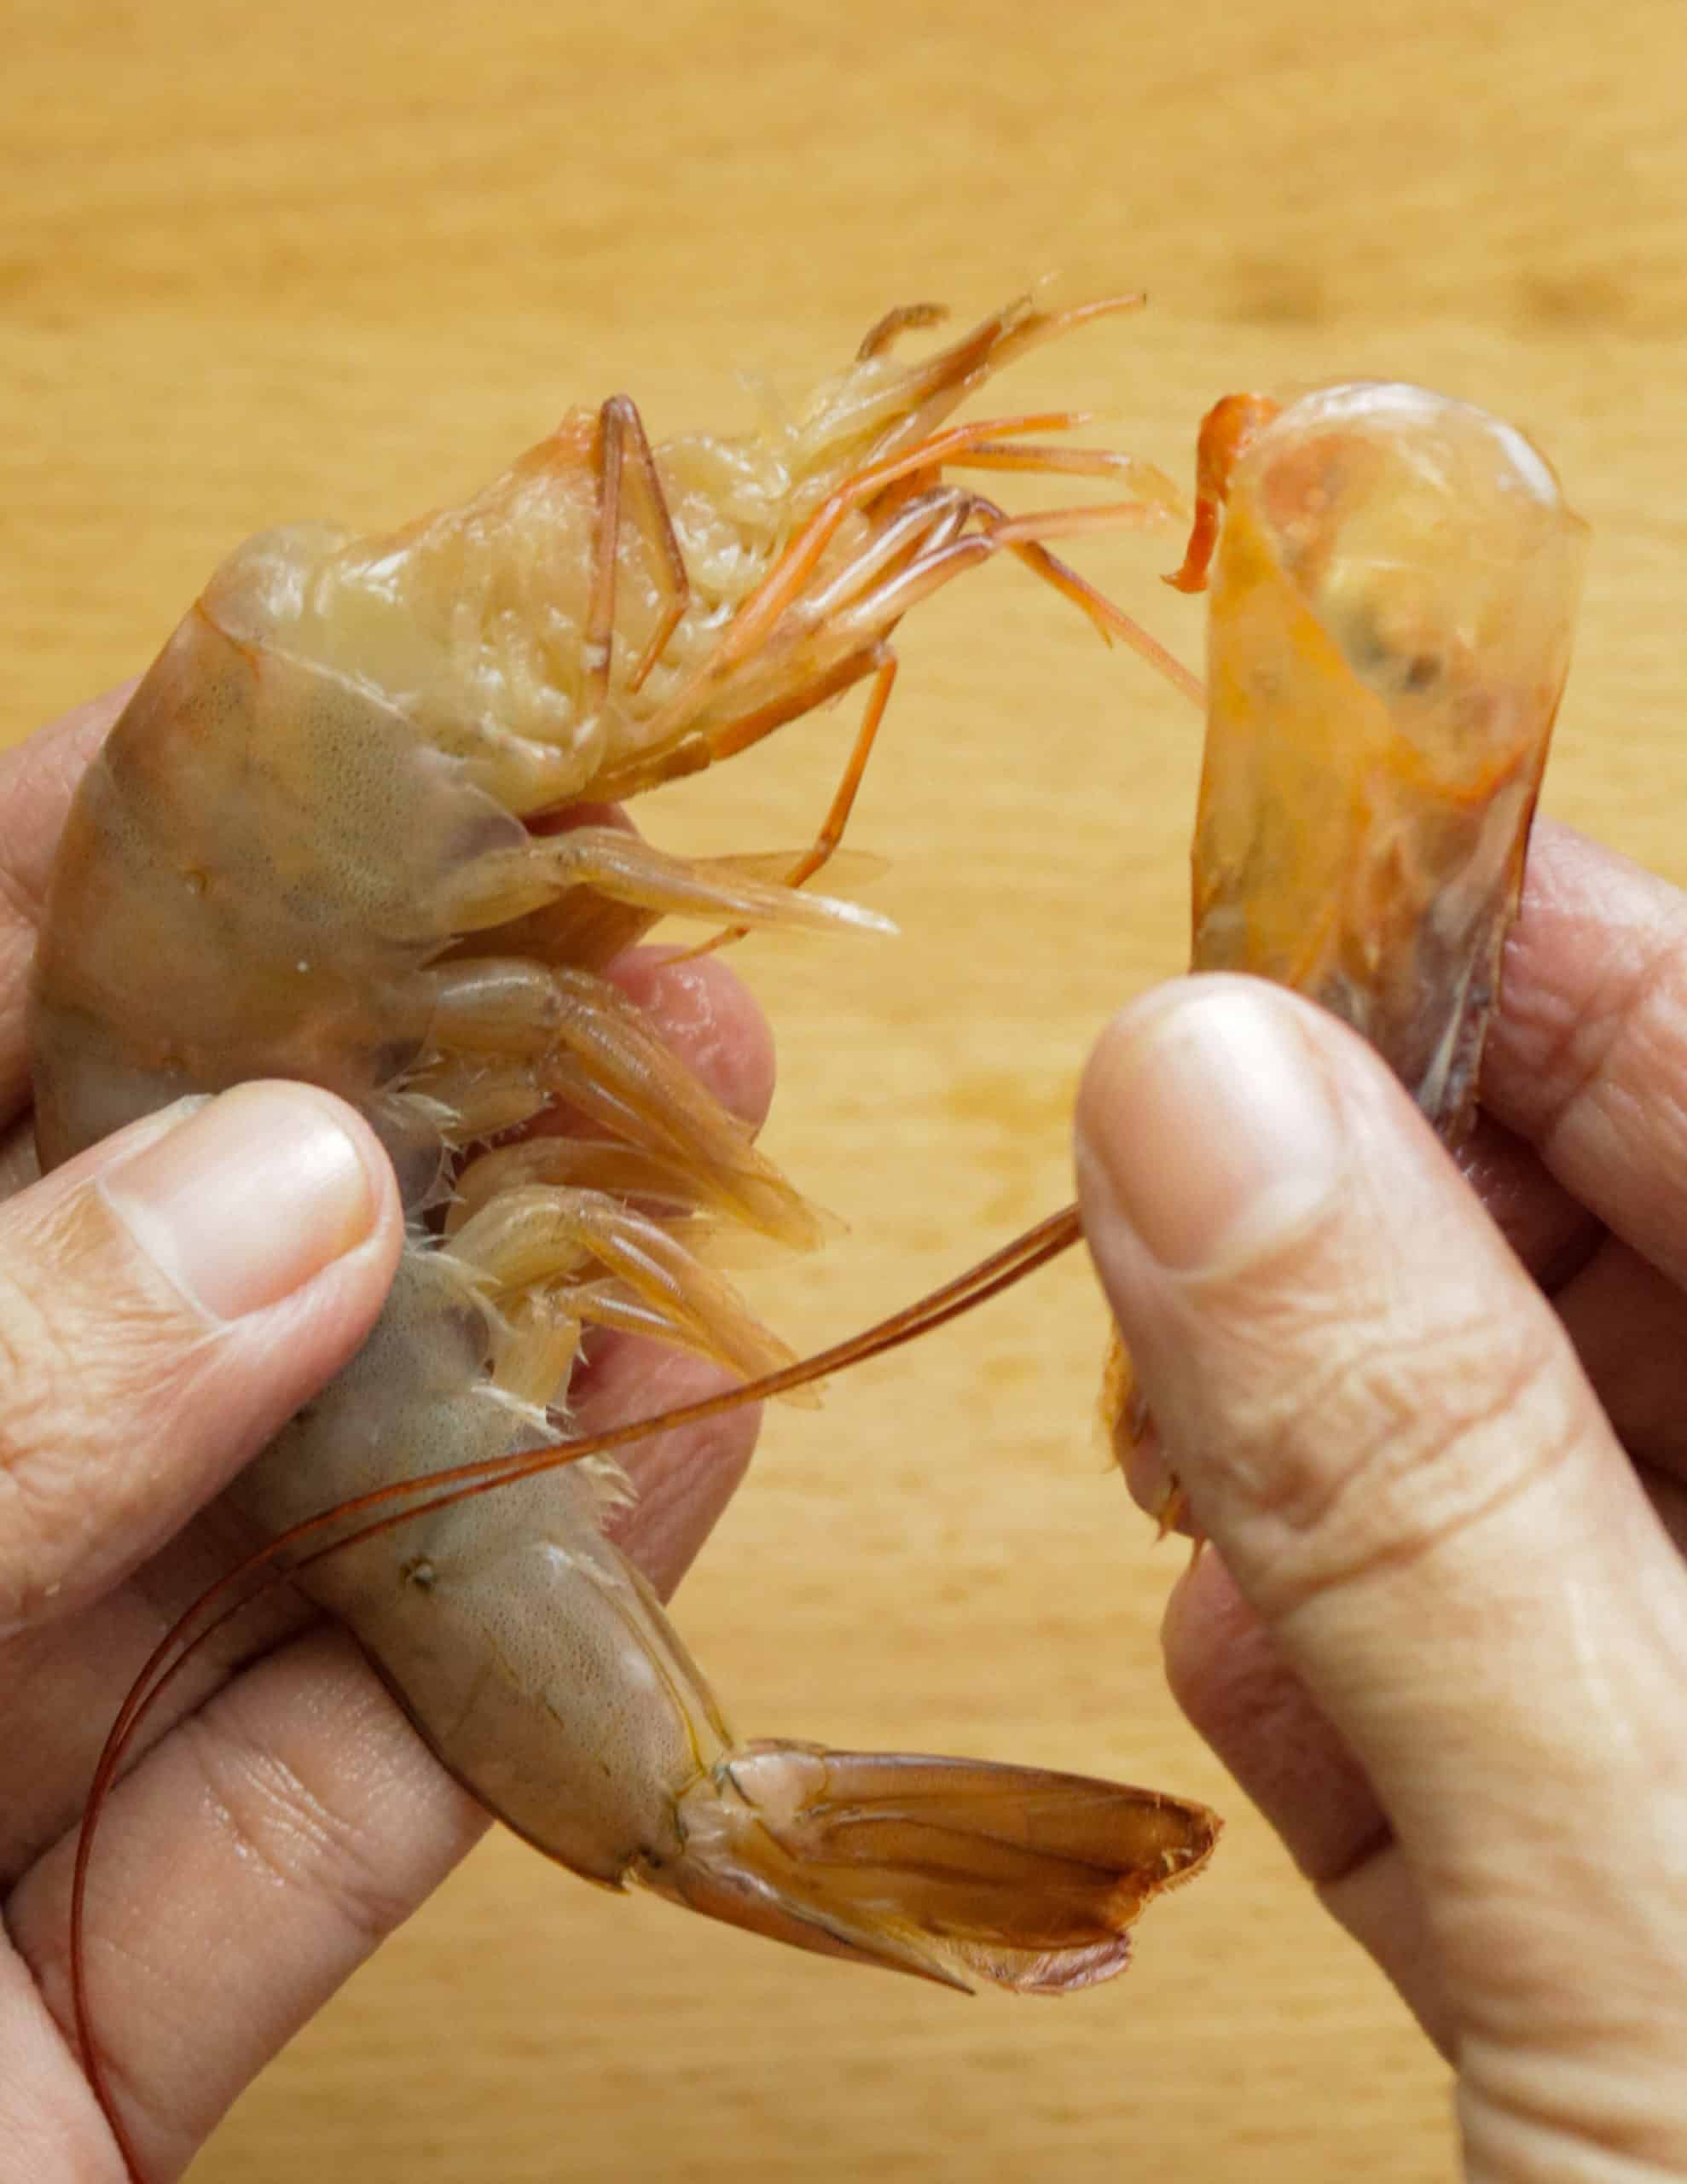 how to remove shrimp head from the shrimp body